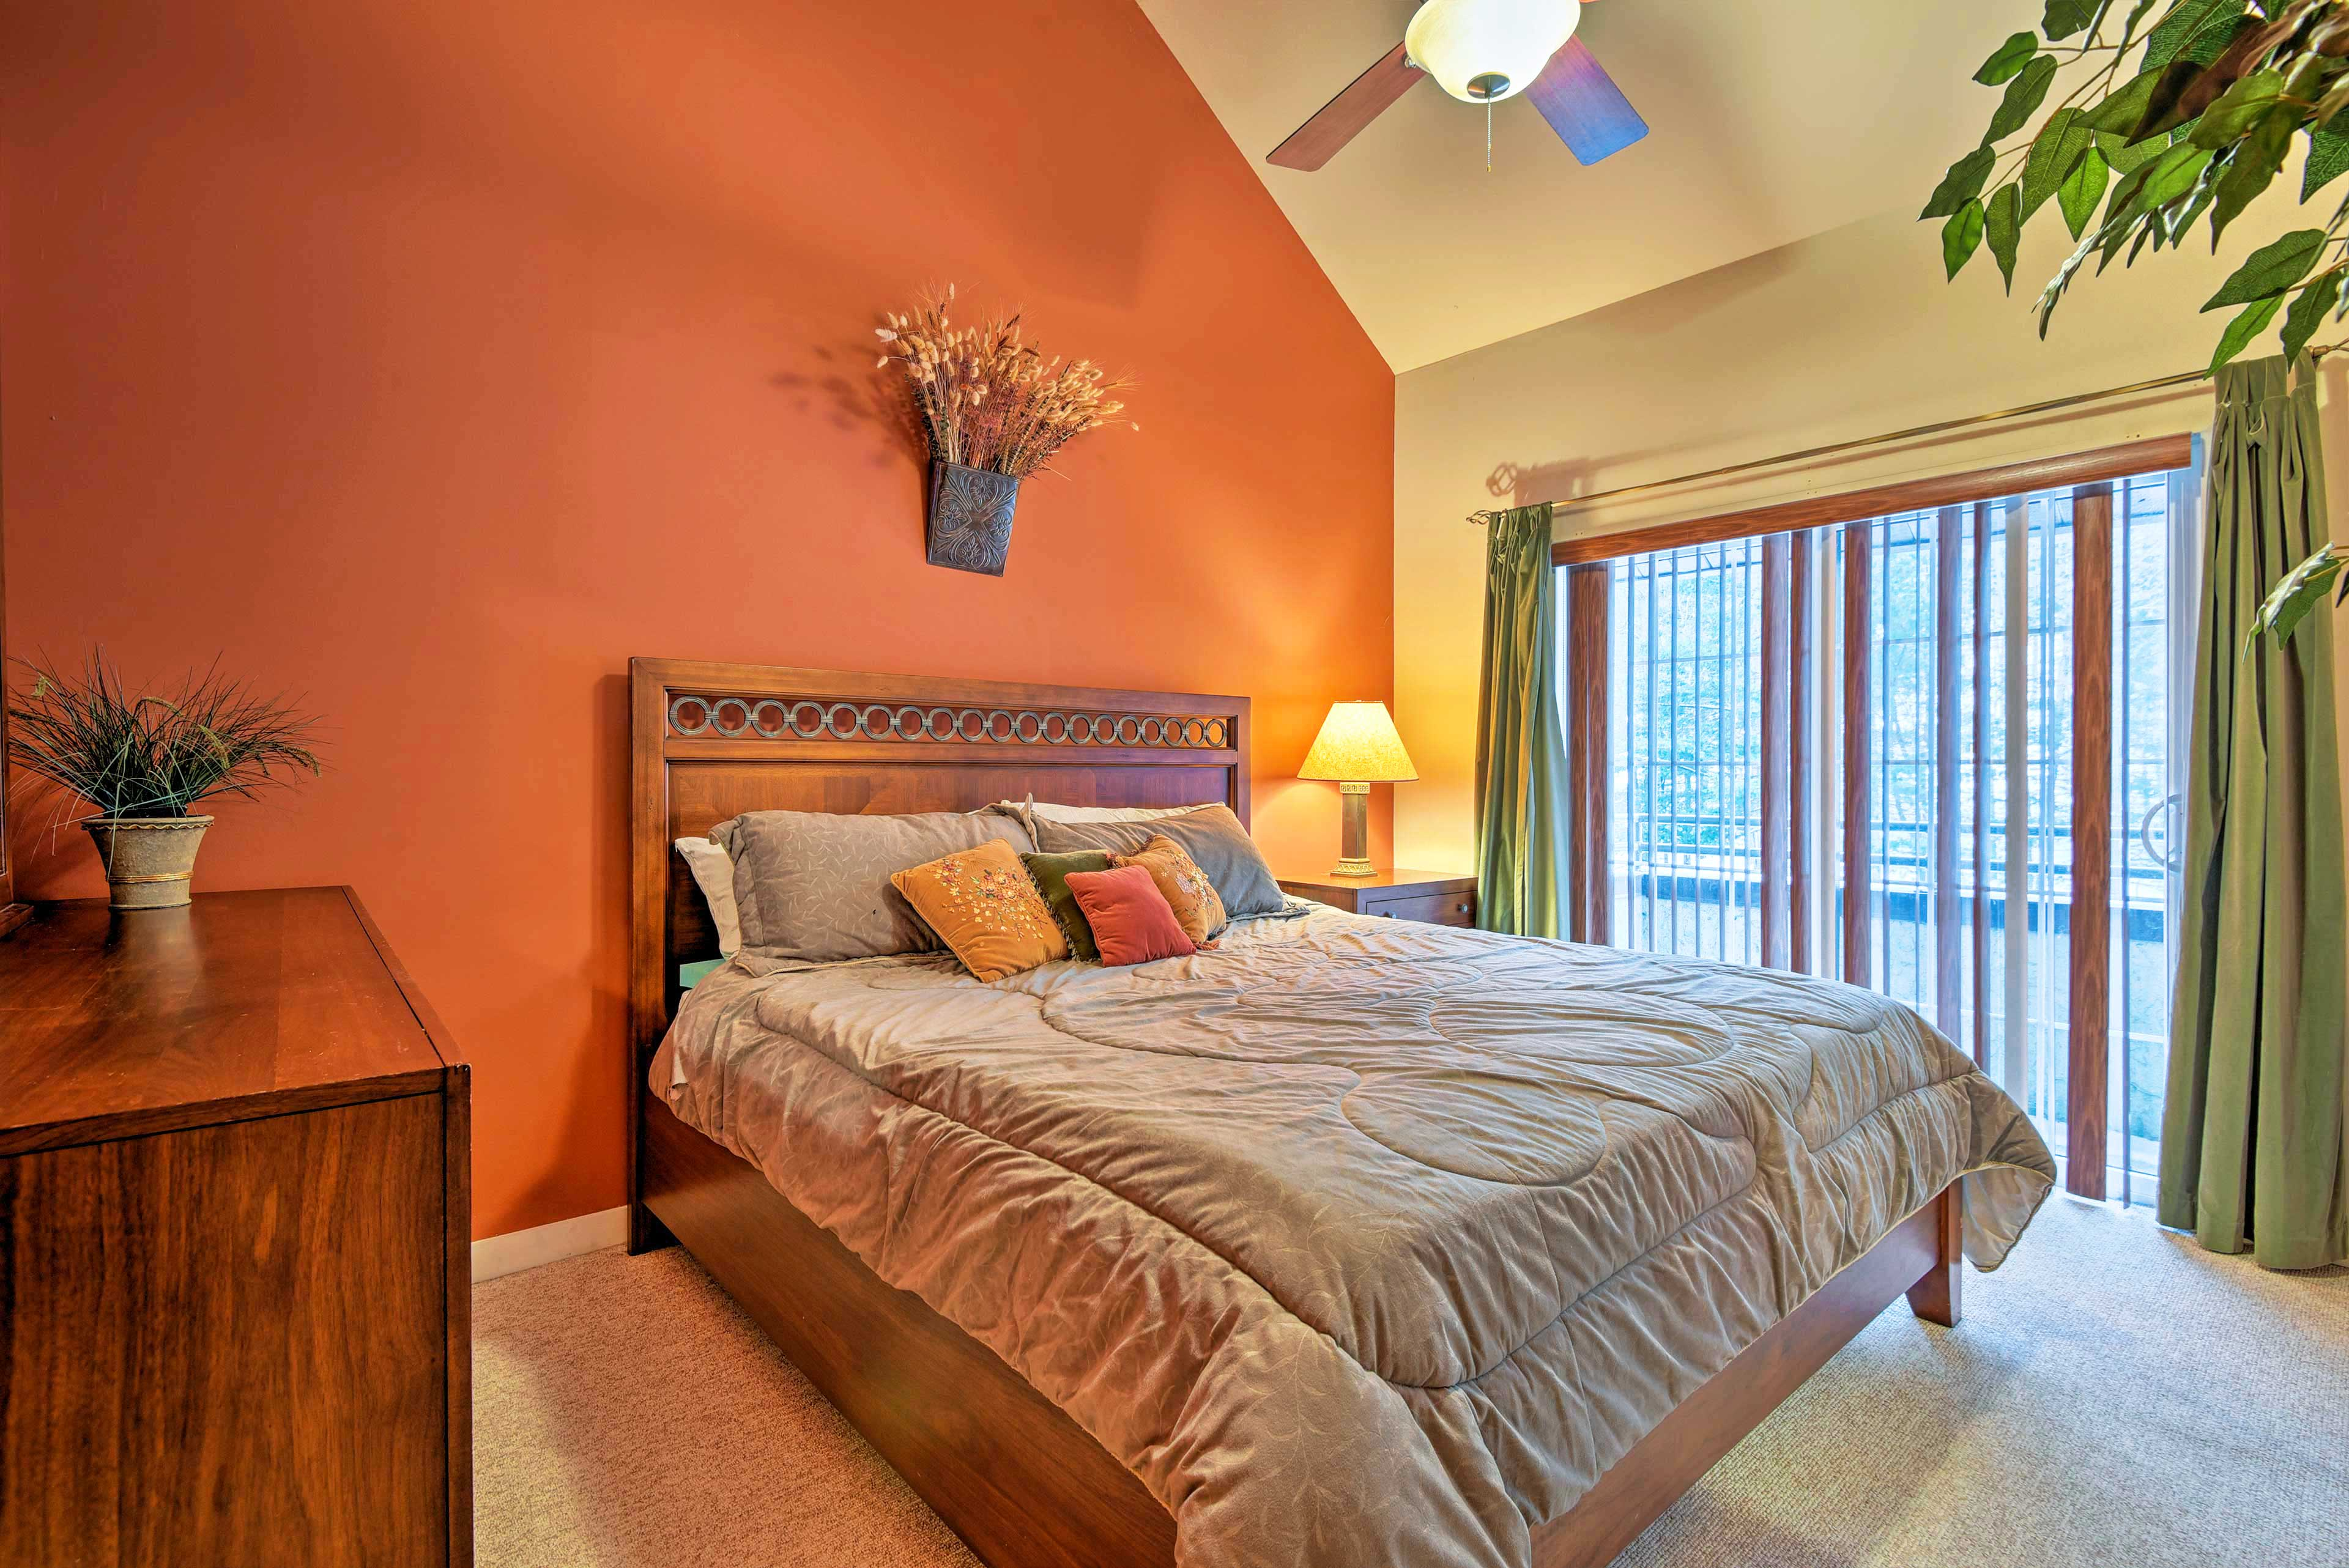 Retreat to the master bedroom for a peaceful slumber.